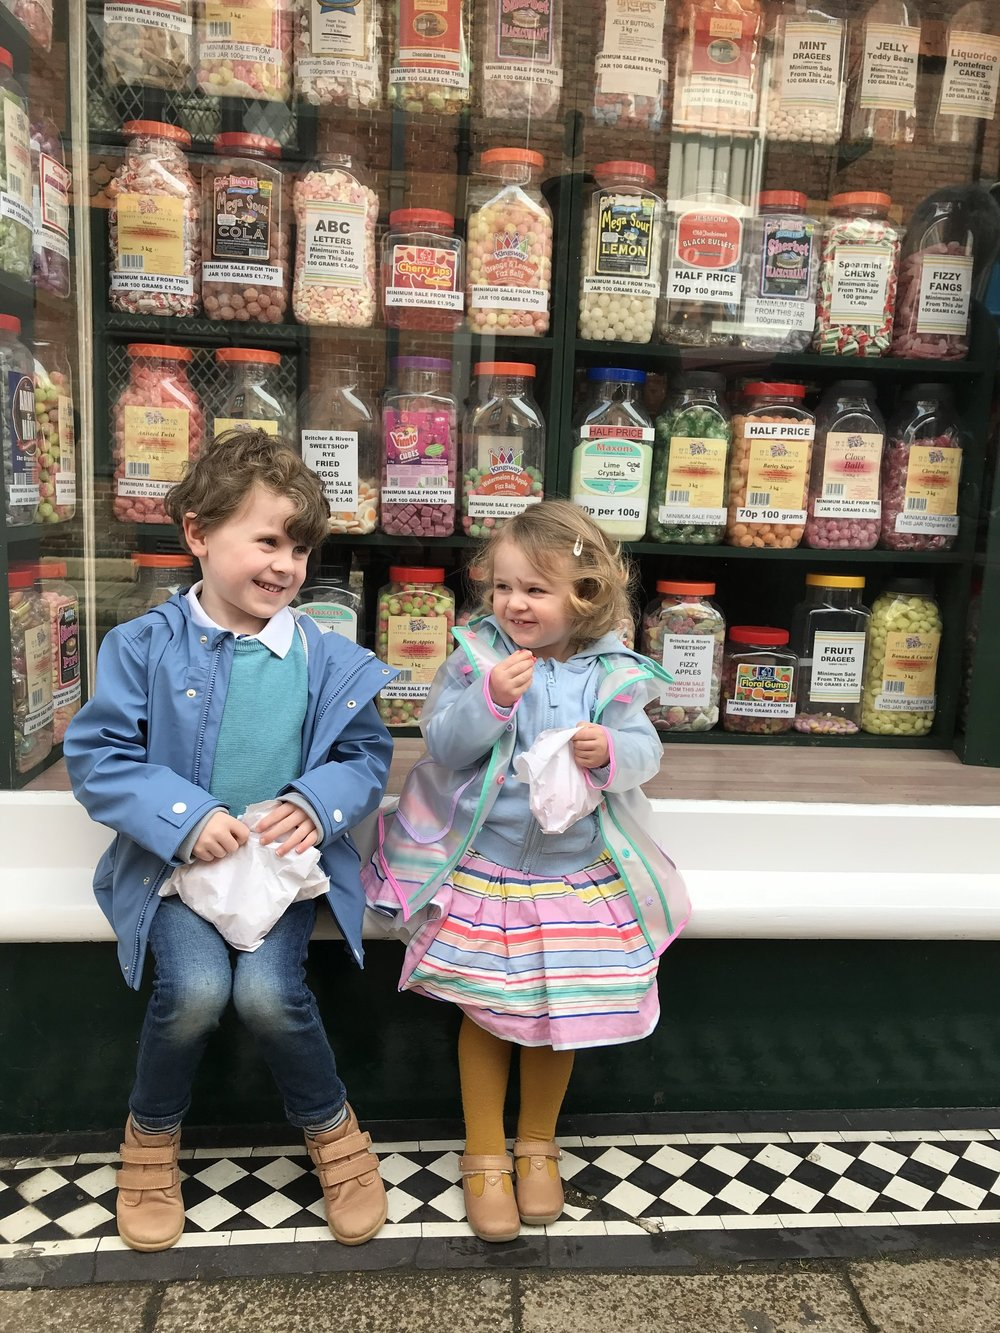 We visited an old fashioned sweetshop in the beautiful medieval town Rye (about 10 minutes drive from the house) and walked along cobbled streets to pick some holiday treats. Kids clothes detailed below.